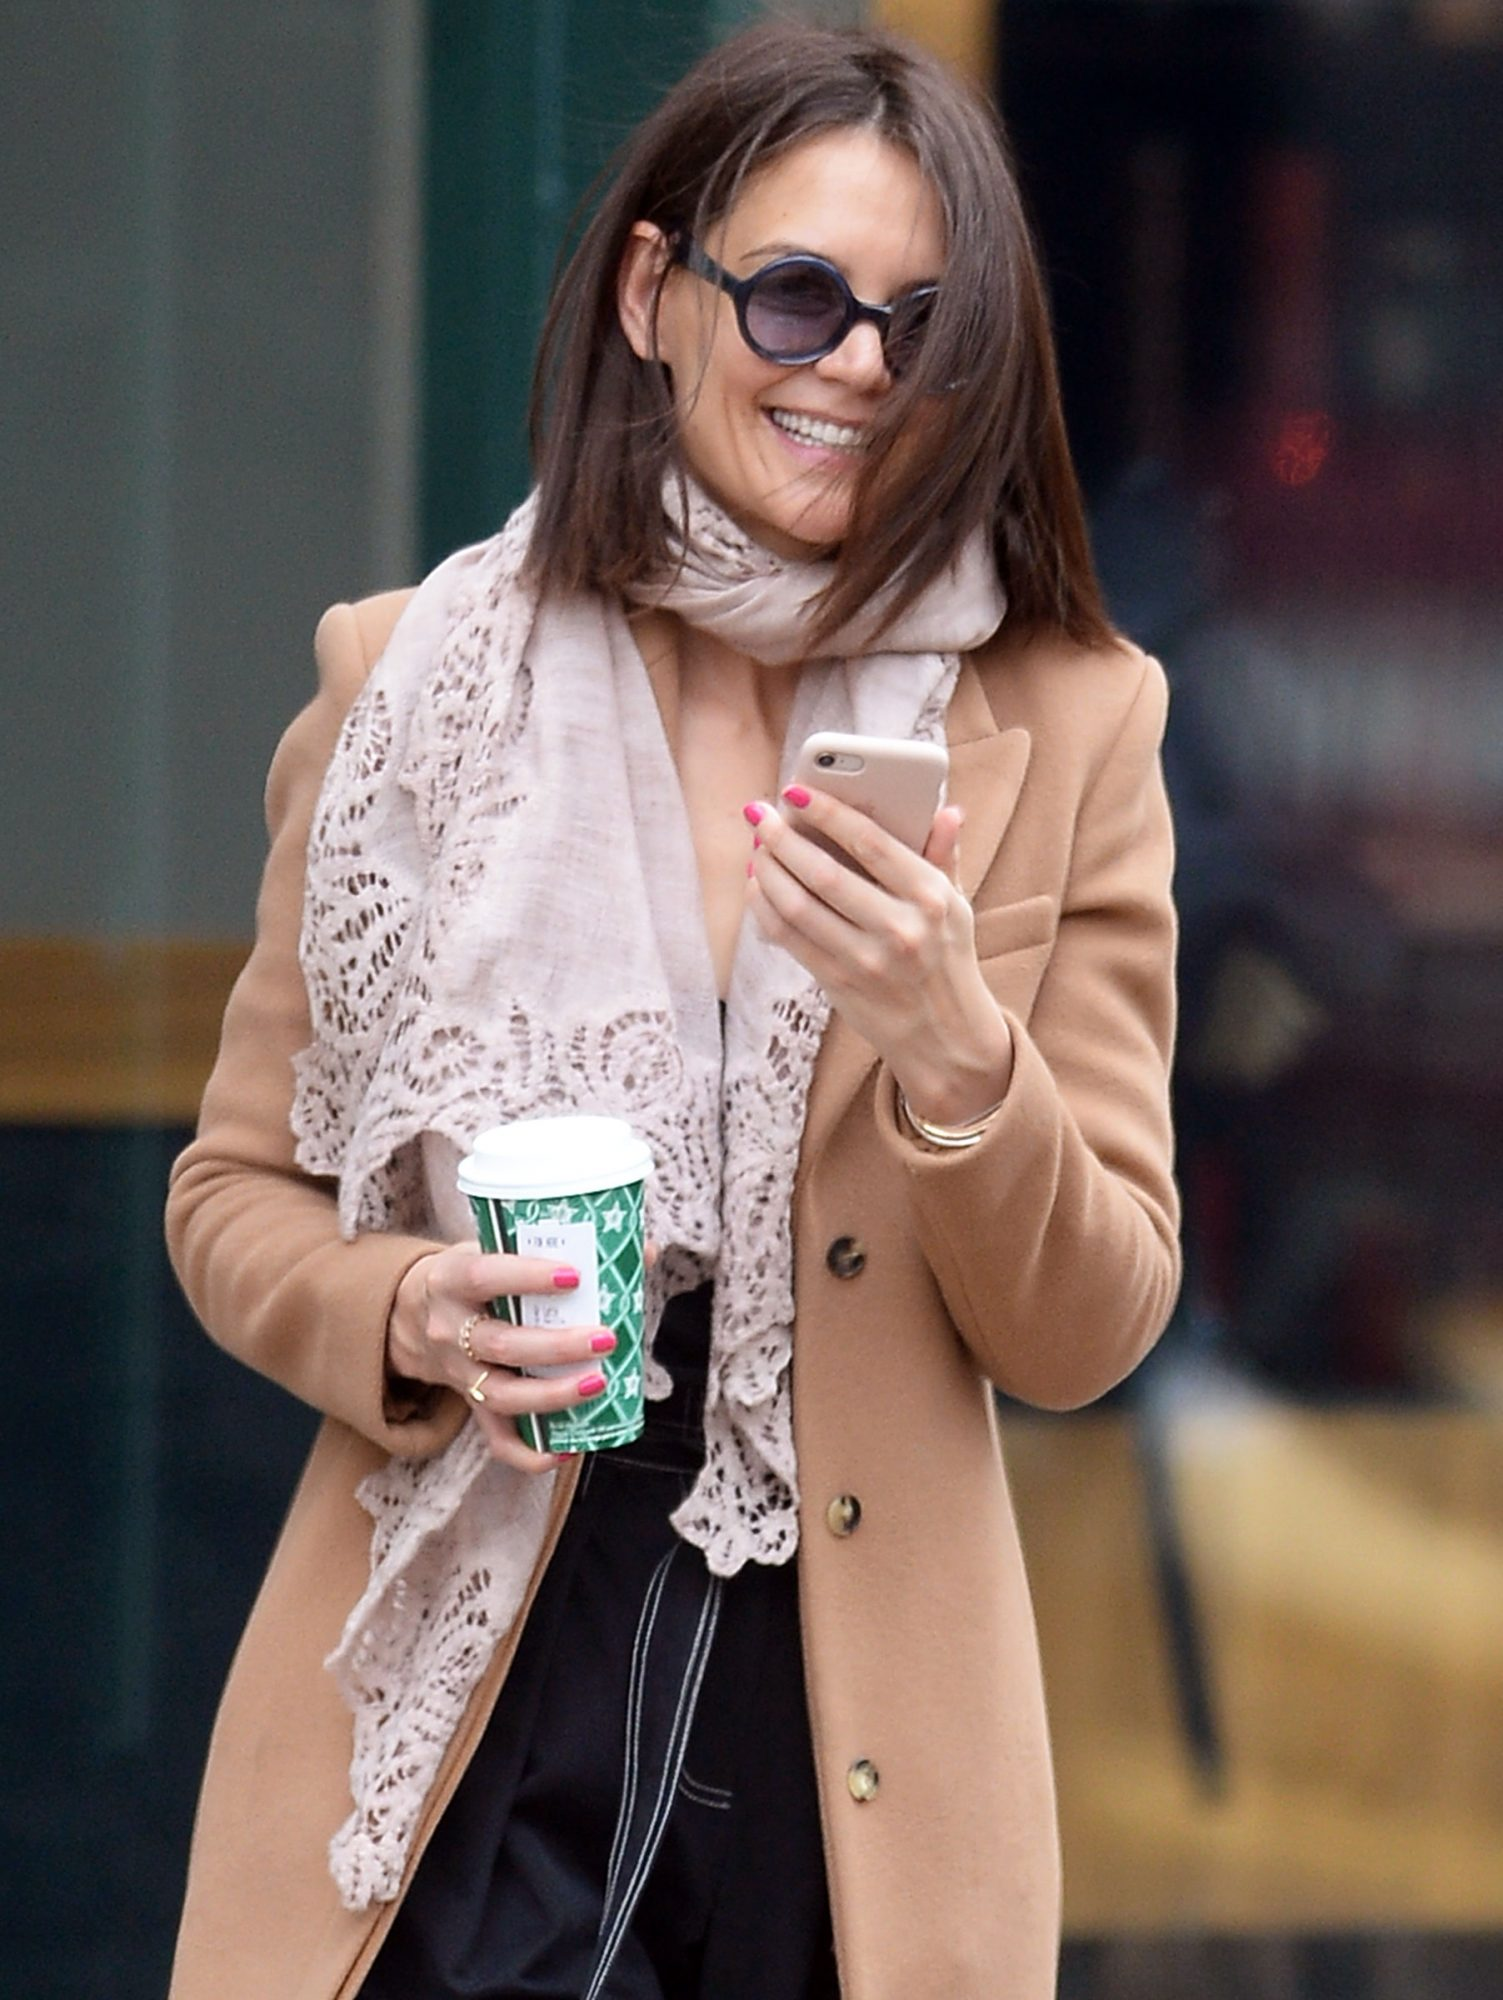 Katie Holmes Is All Smiles Reading A Text On Her Cellphone While Getting Her Morning Coffee In New York City After Celebrating Christmas